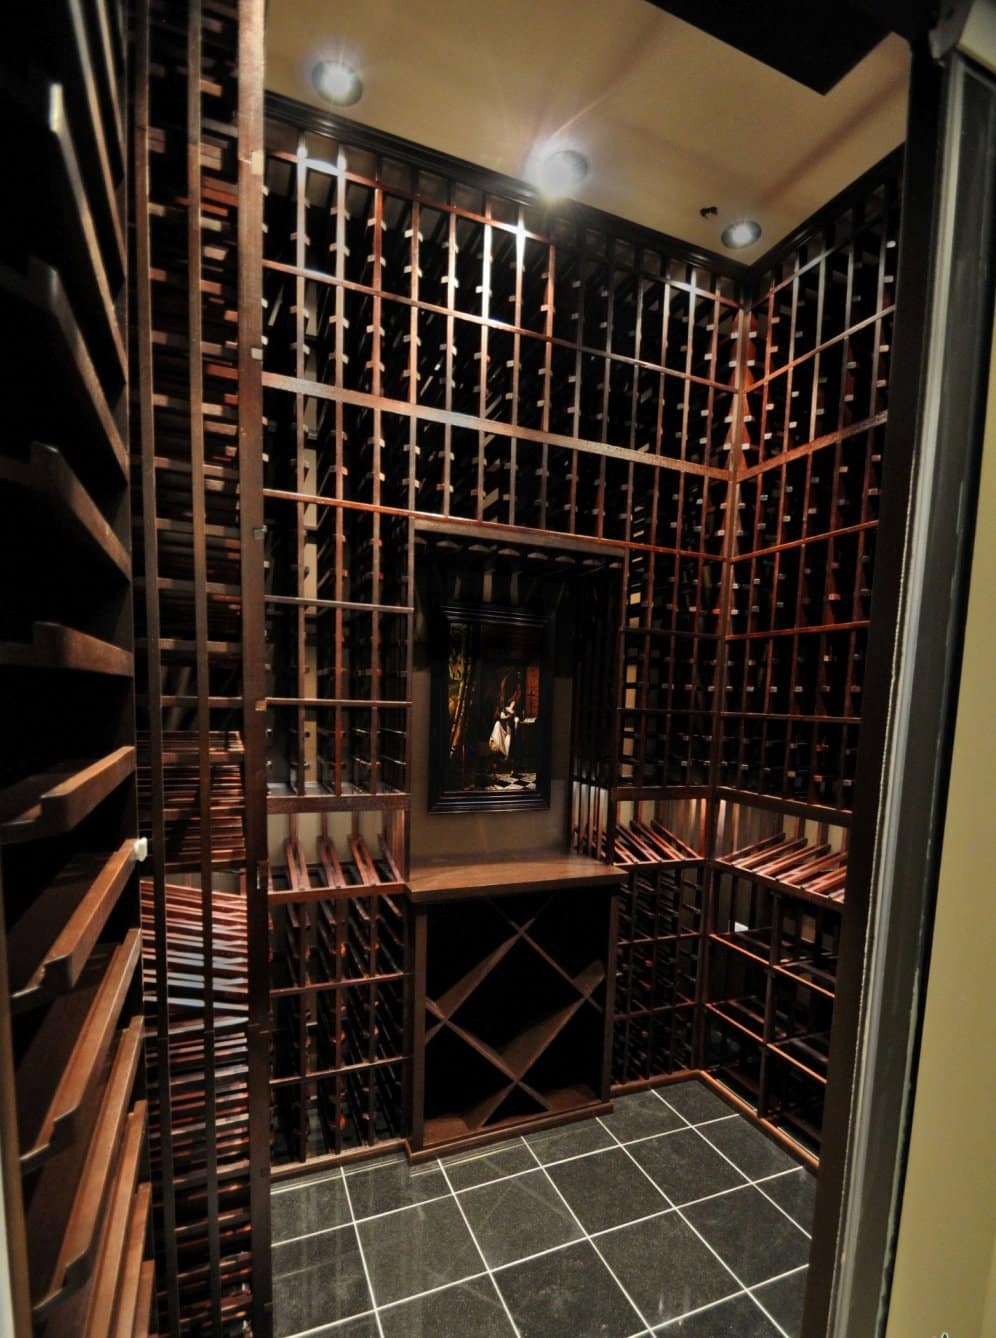 Climate Control System Stabilizes the Wine Cellar Environment